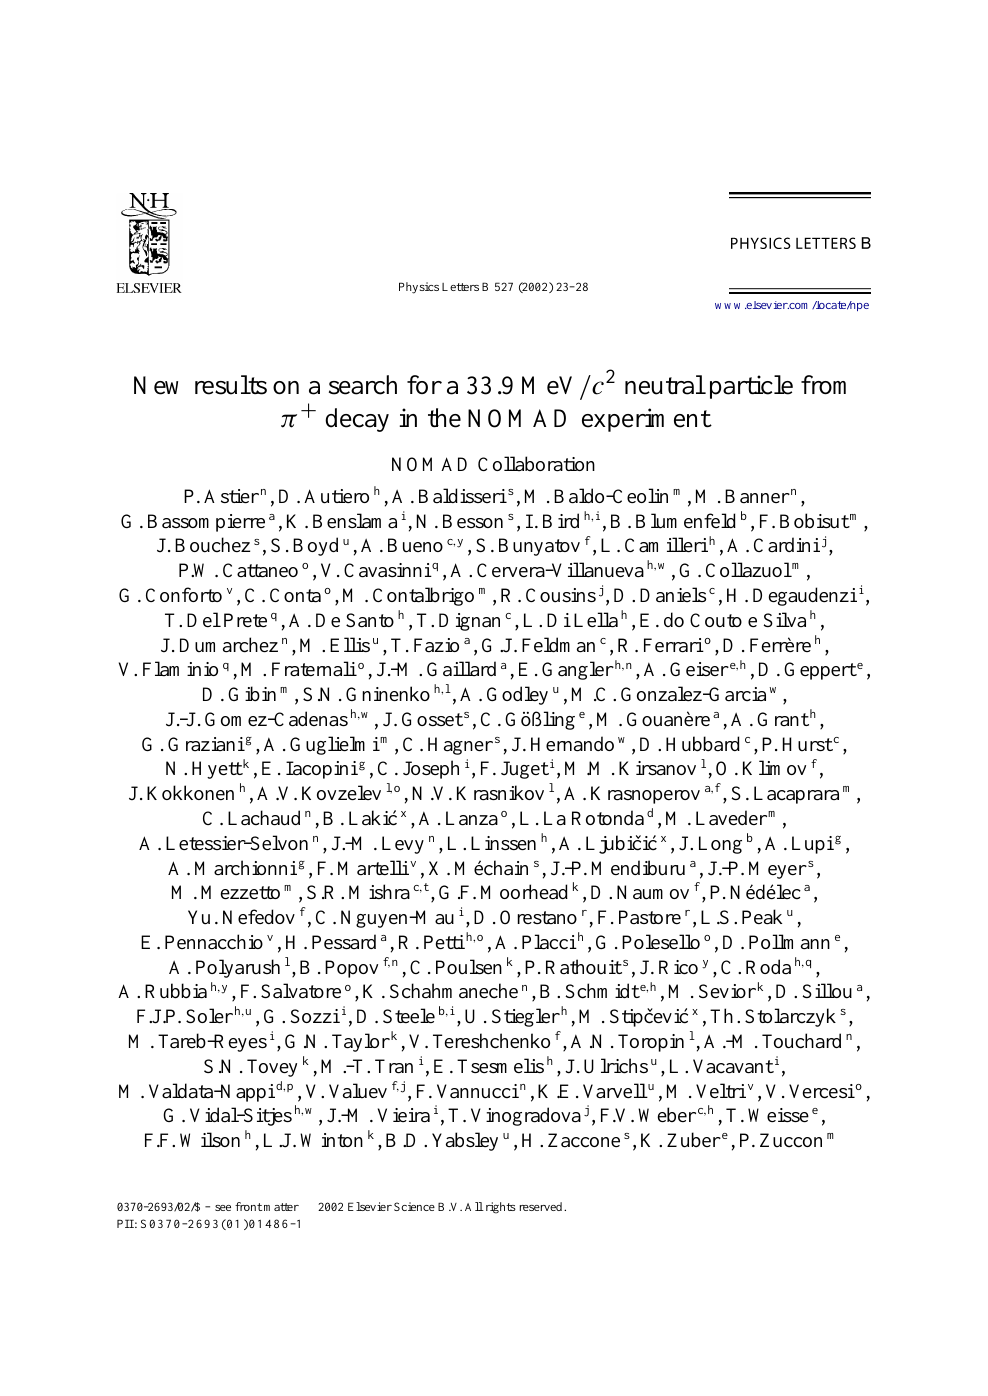 New results on a search for a 33 9 MeV/c2 neutral particle